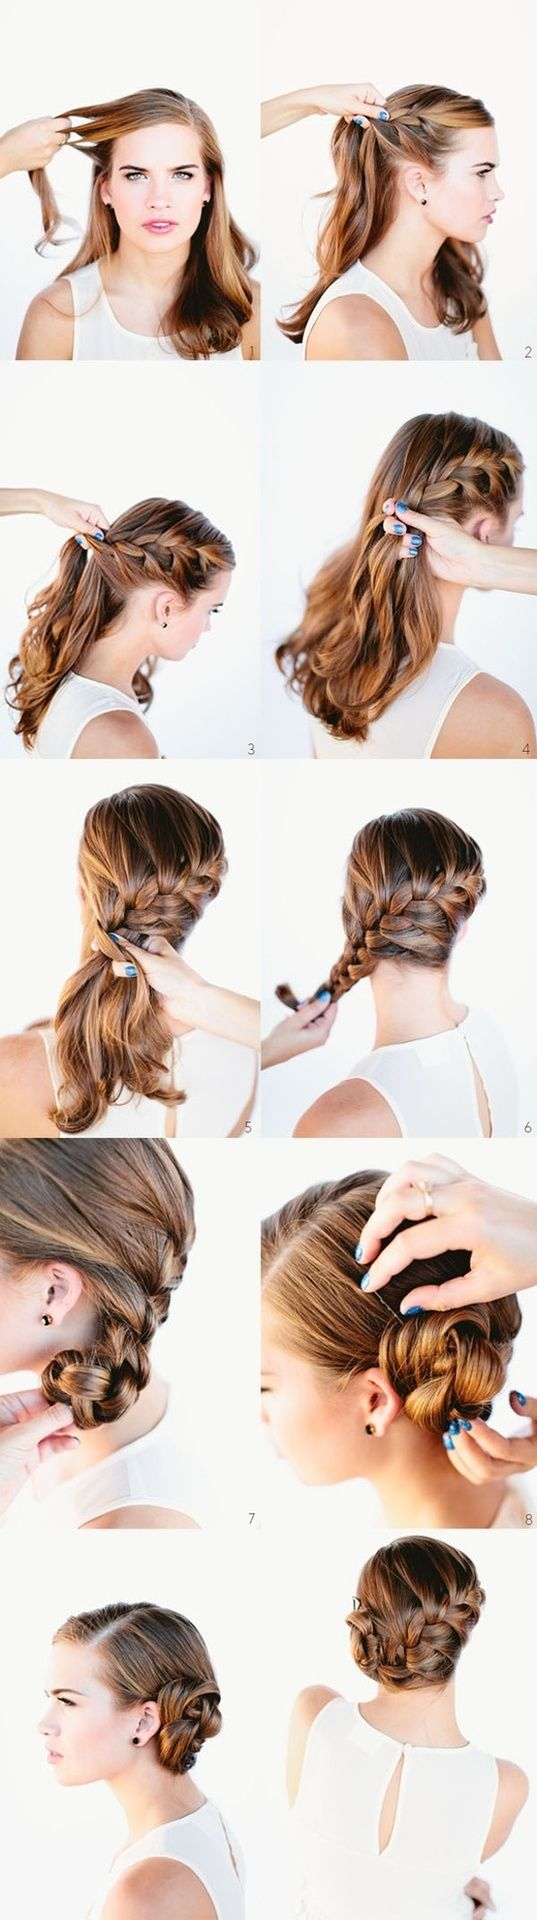 How-to: Braided side bun